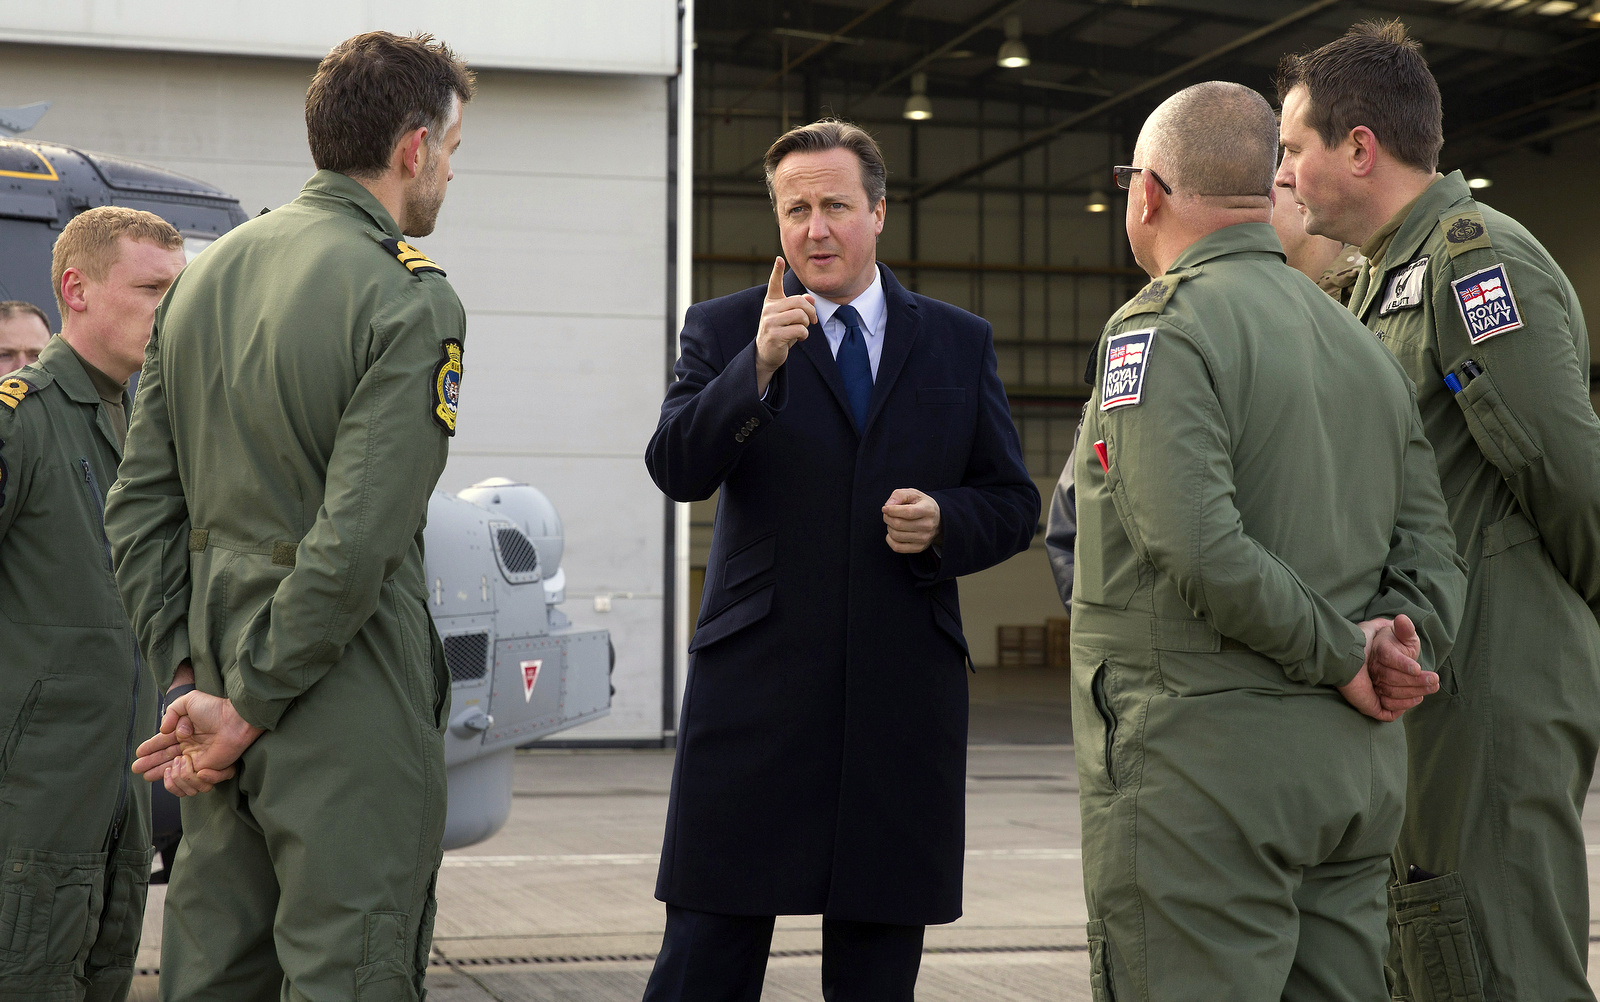 70,000 Moderate Fighters in Syria? It's Another Cameron Photoshop